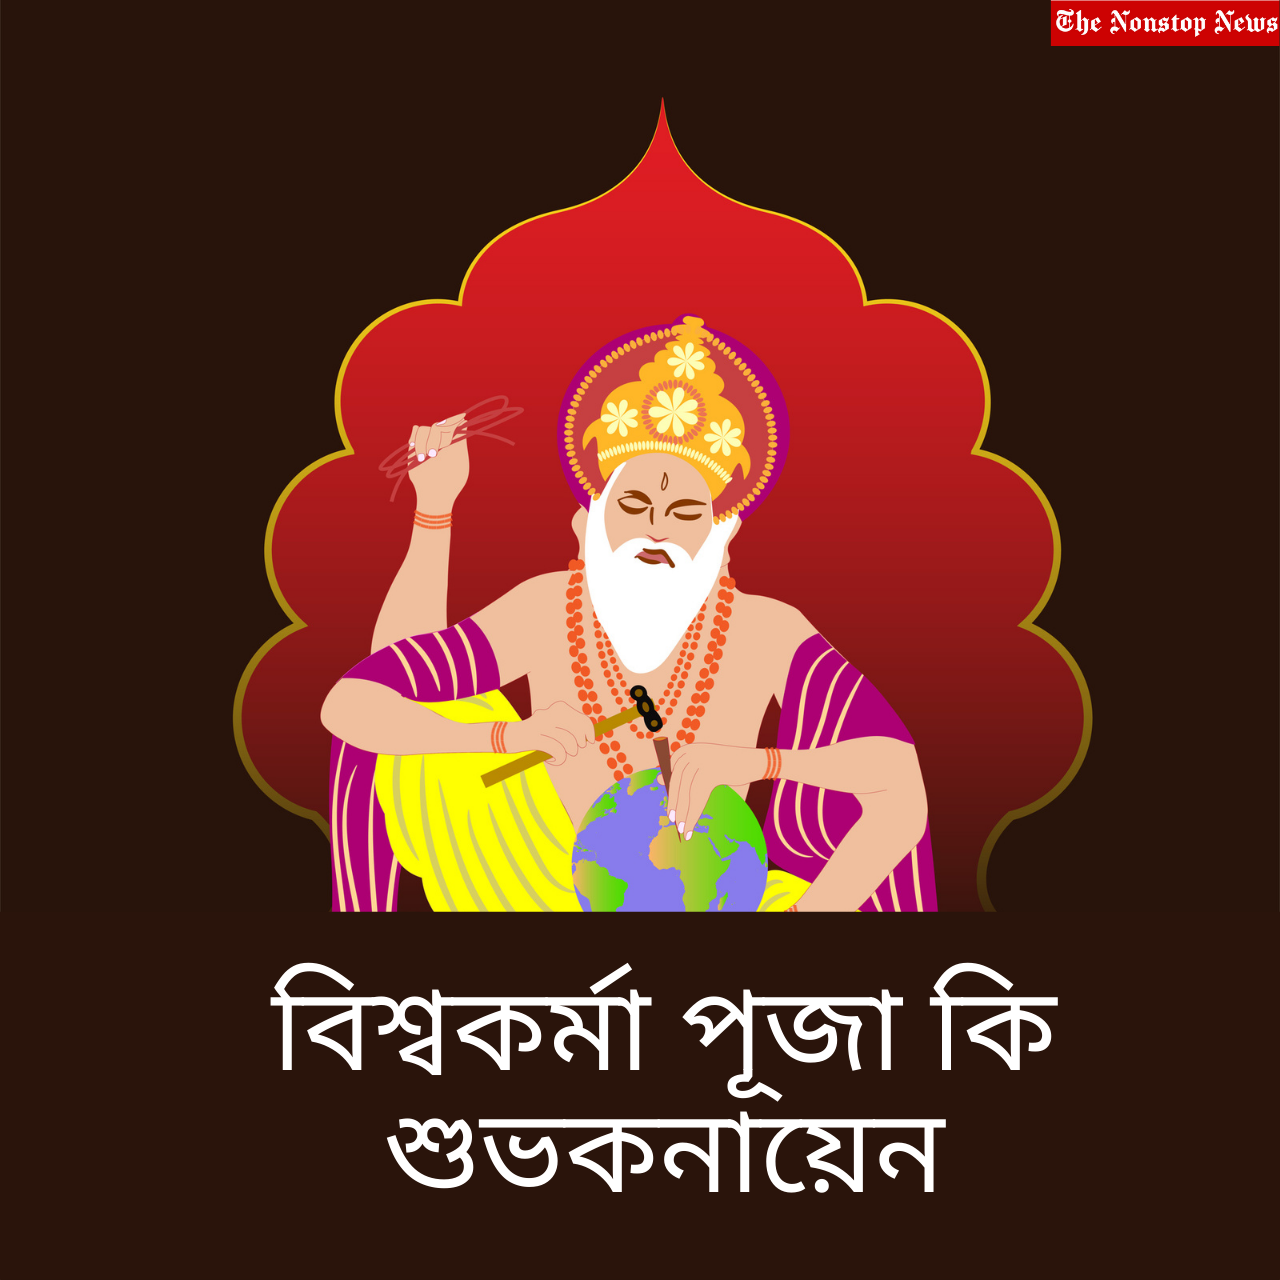 Vishwakarma Puja 2021 Bengali Wishes, Images, Quotes, Messages, Greetings, and Images to share